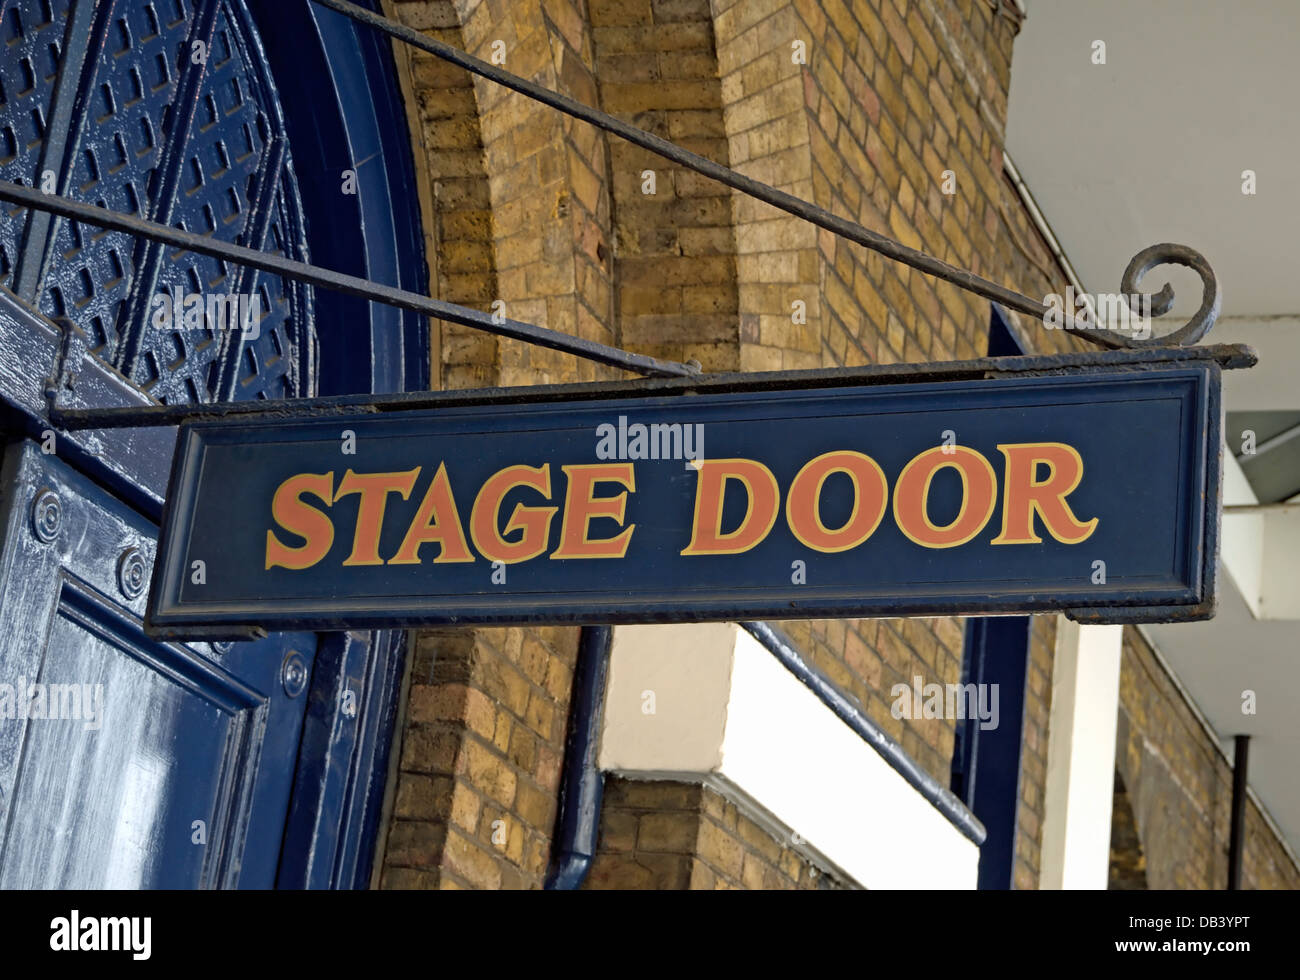 stage door sign at the theatre royal, drury lane, london, england - Stock Image